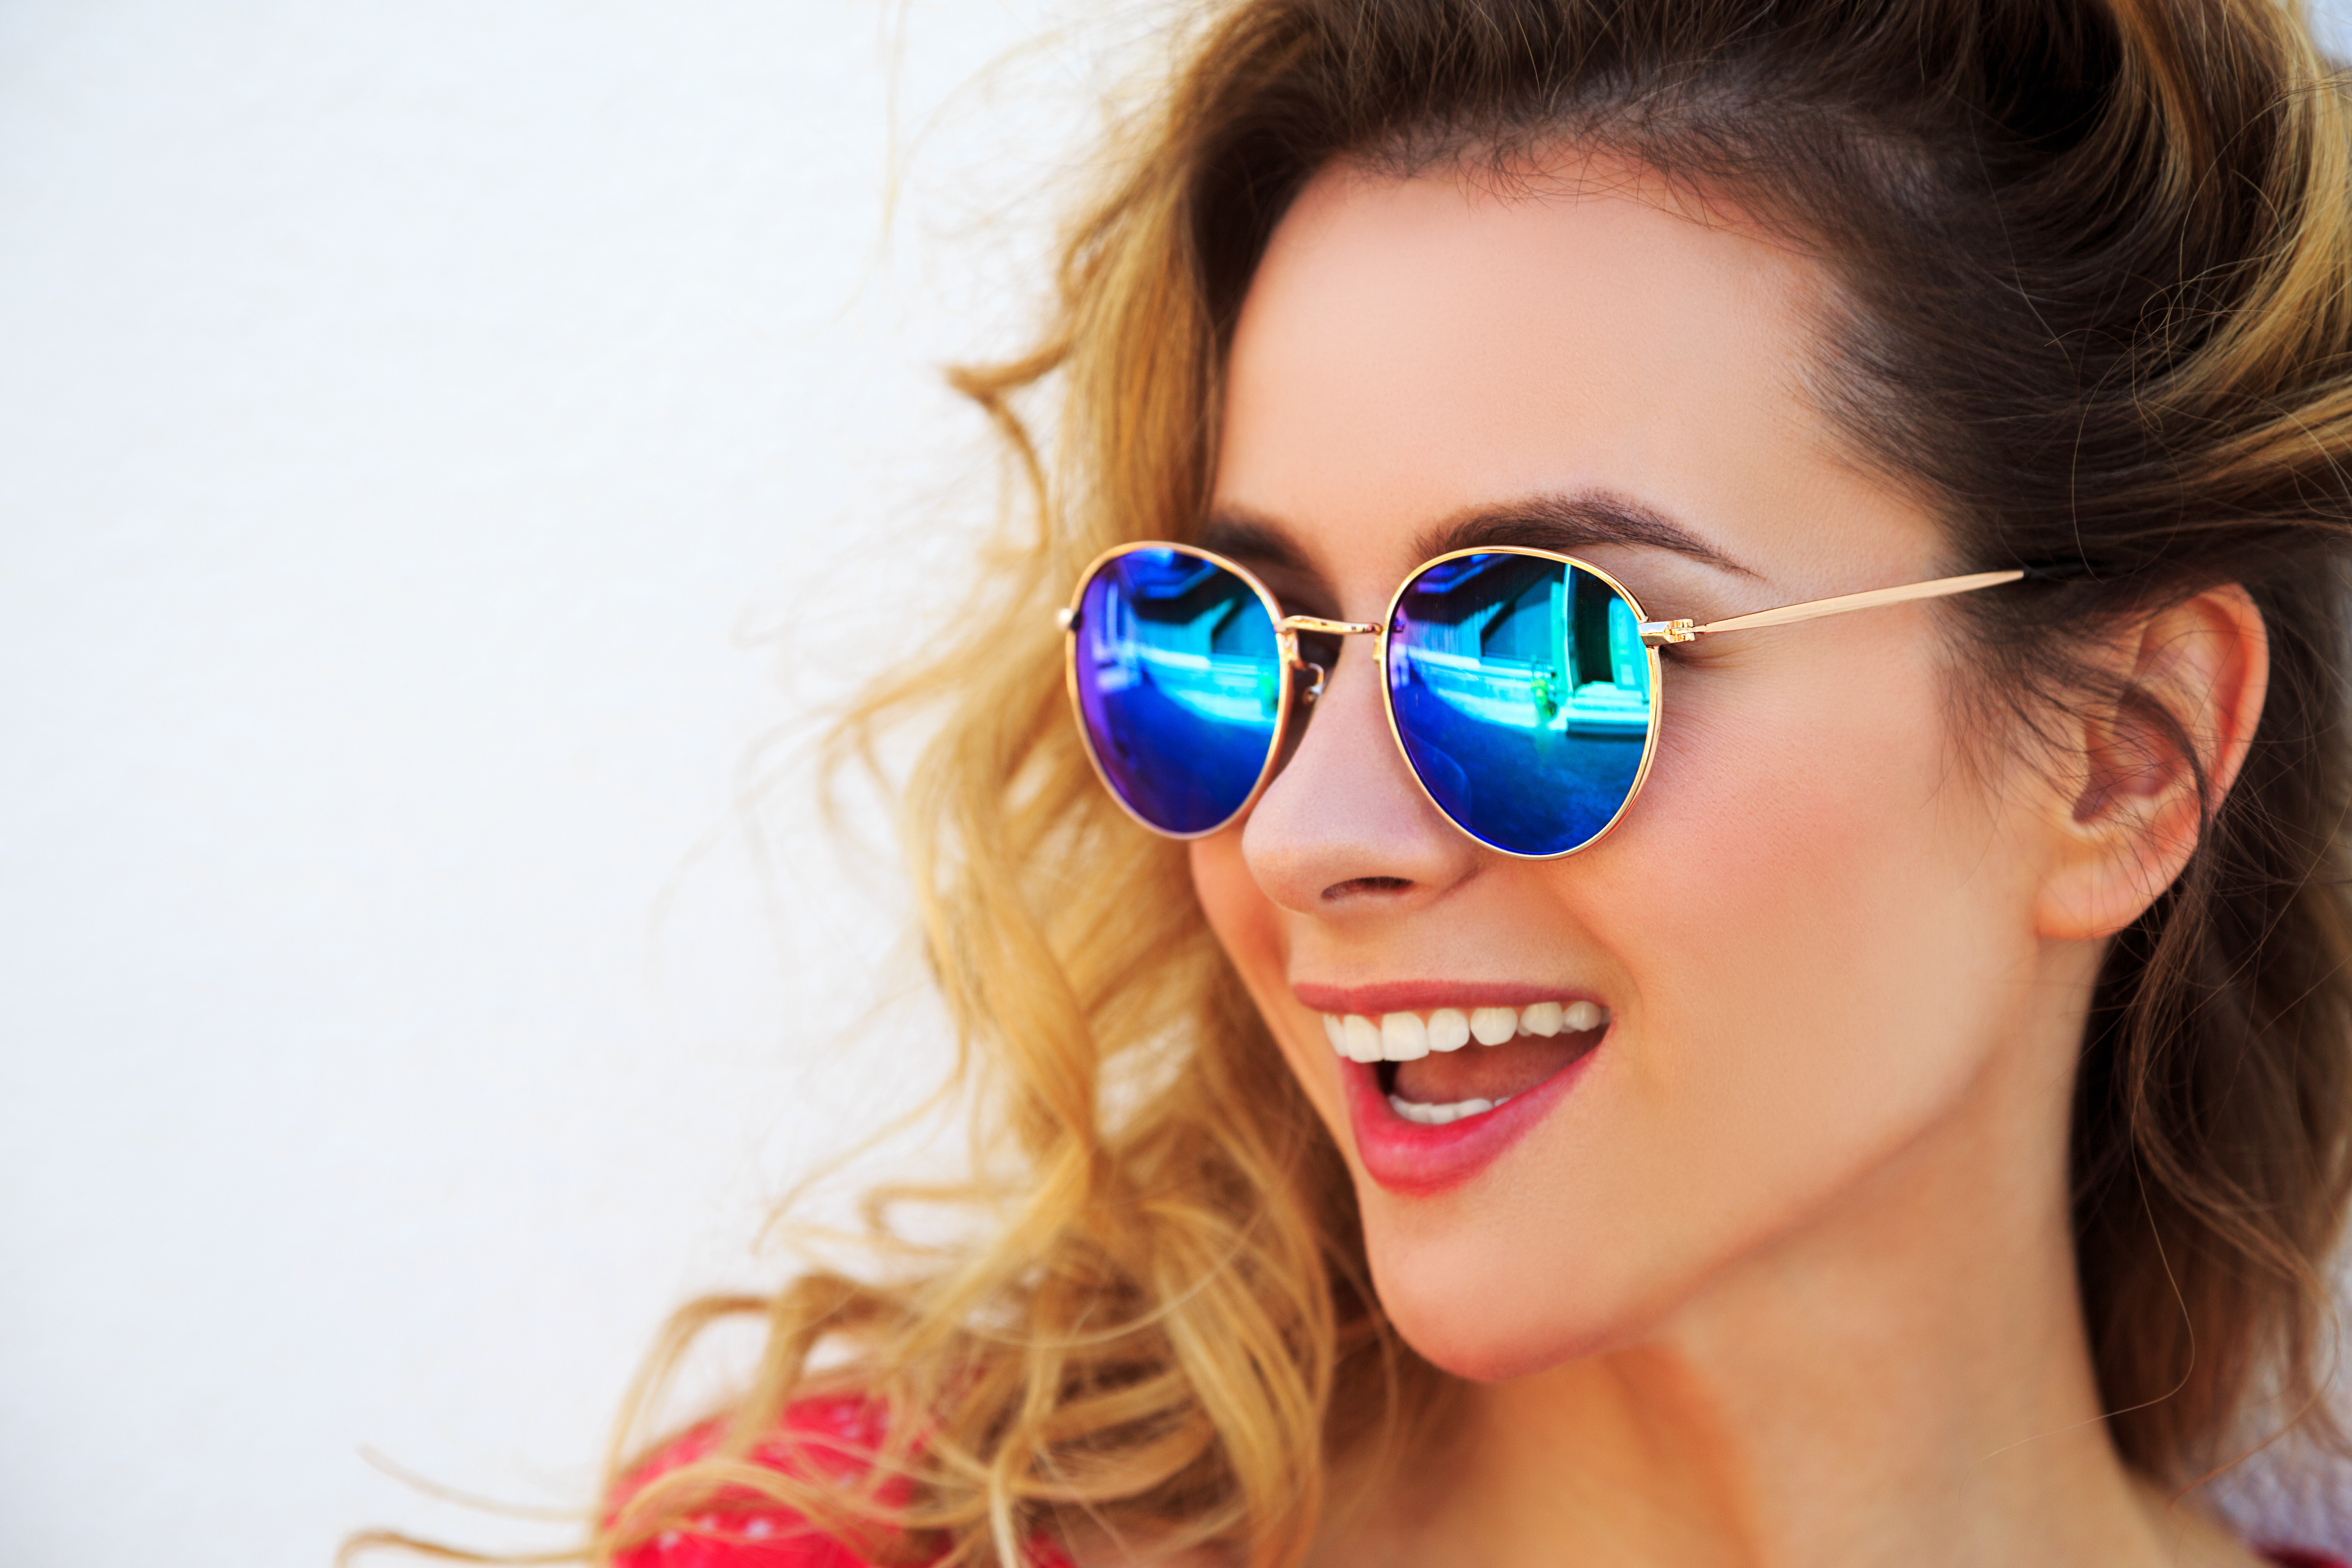 5cc4b47453 ... there s more to sunglasses than looking good in them. You need quality  lenses that protect your eyes from dangerous UV rays